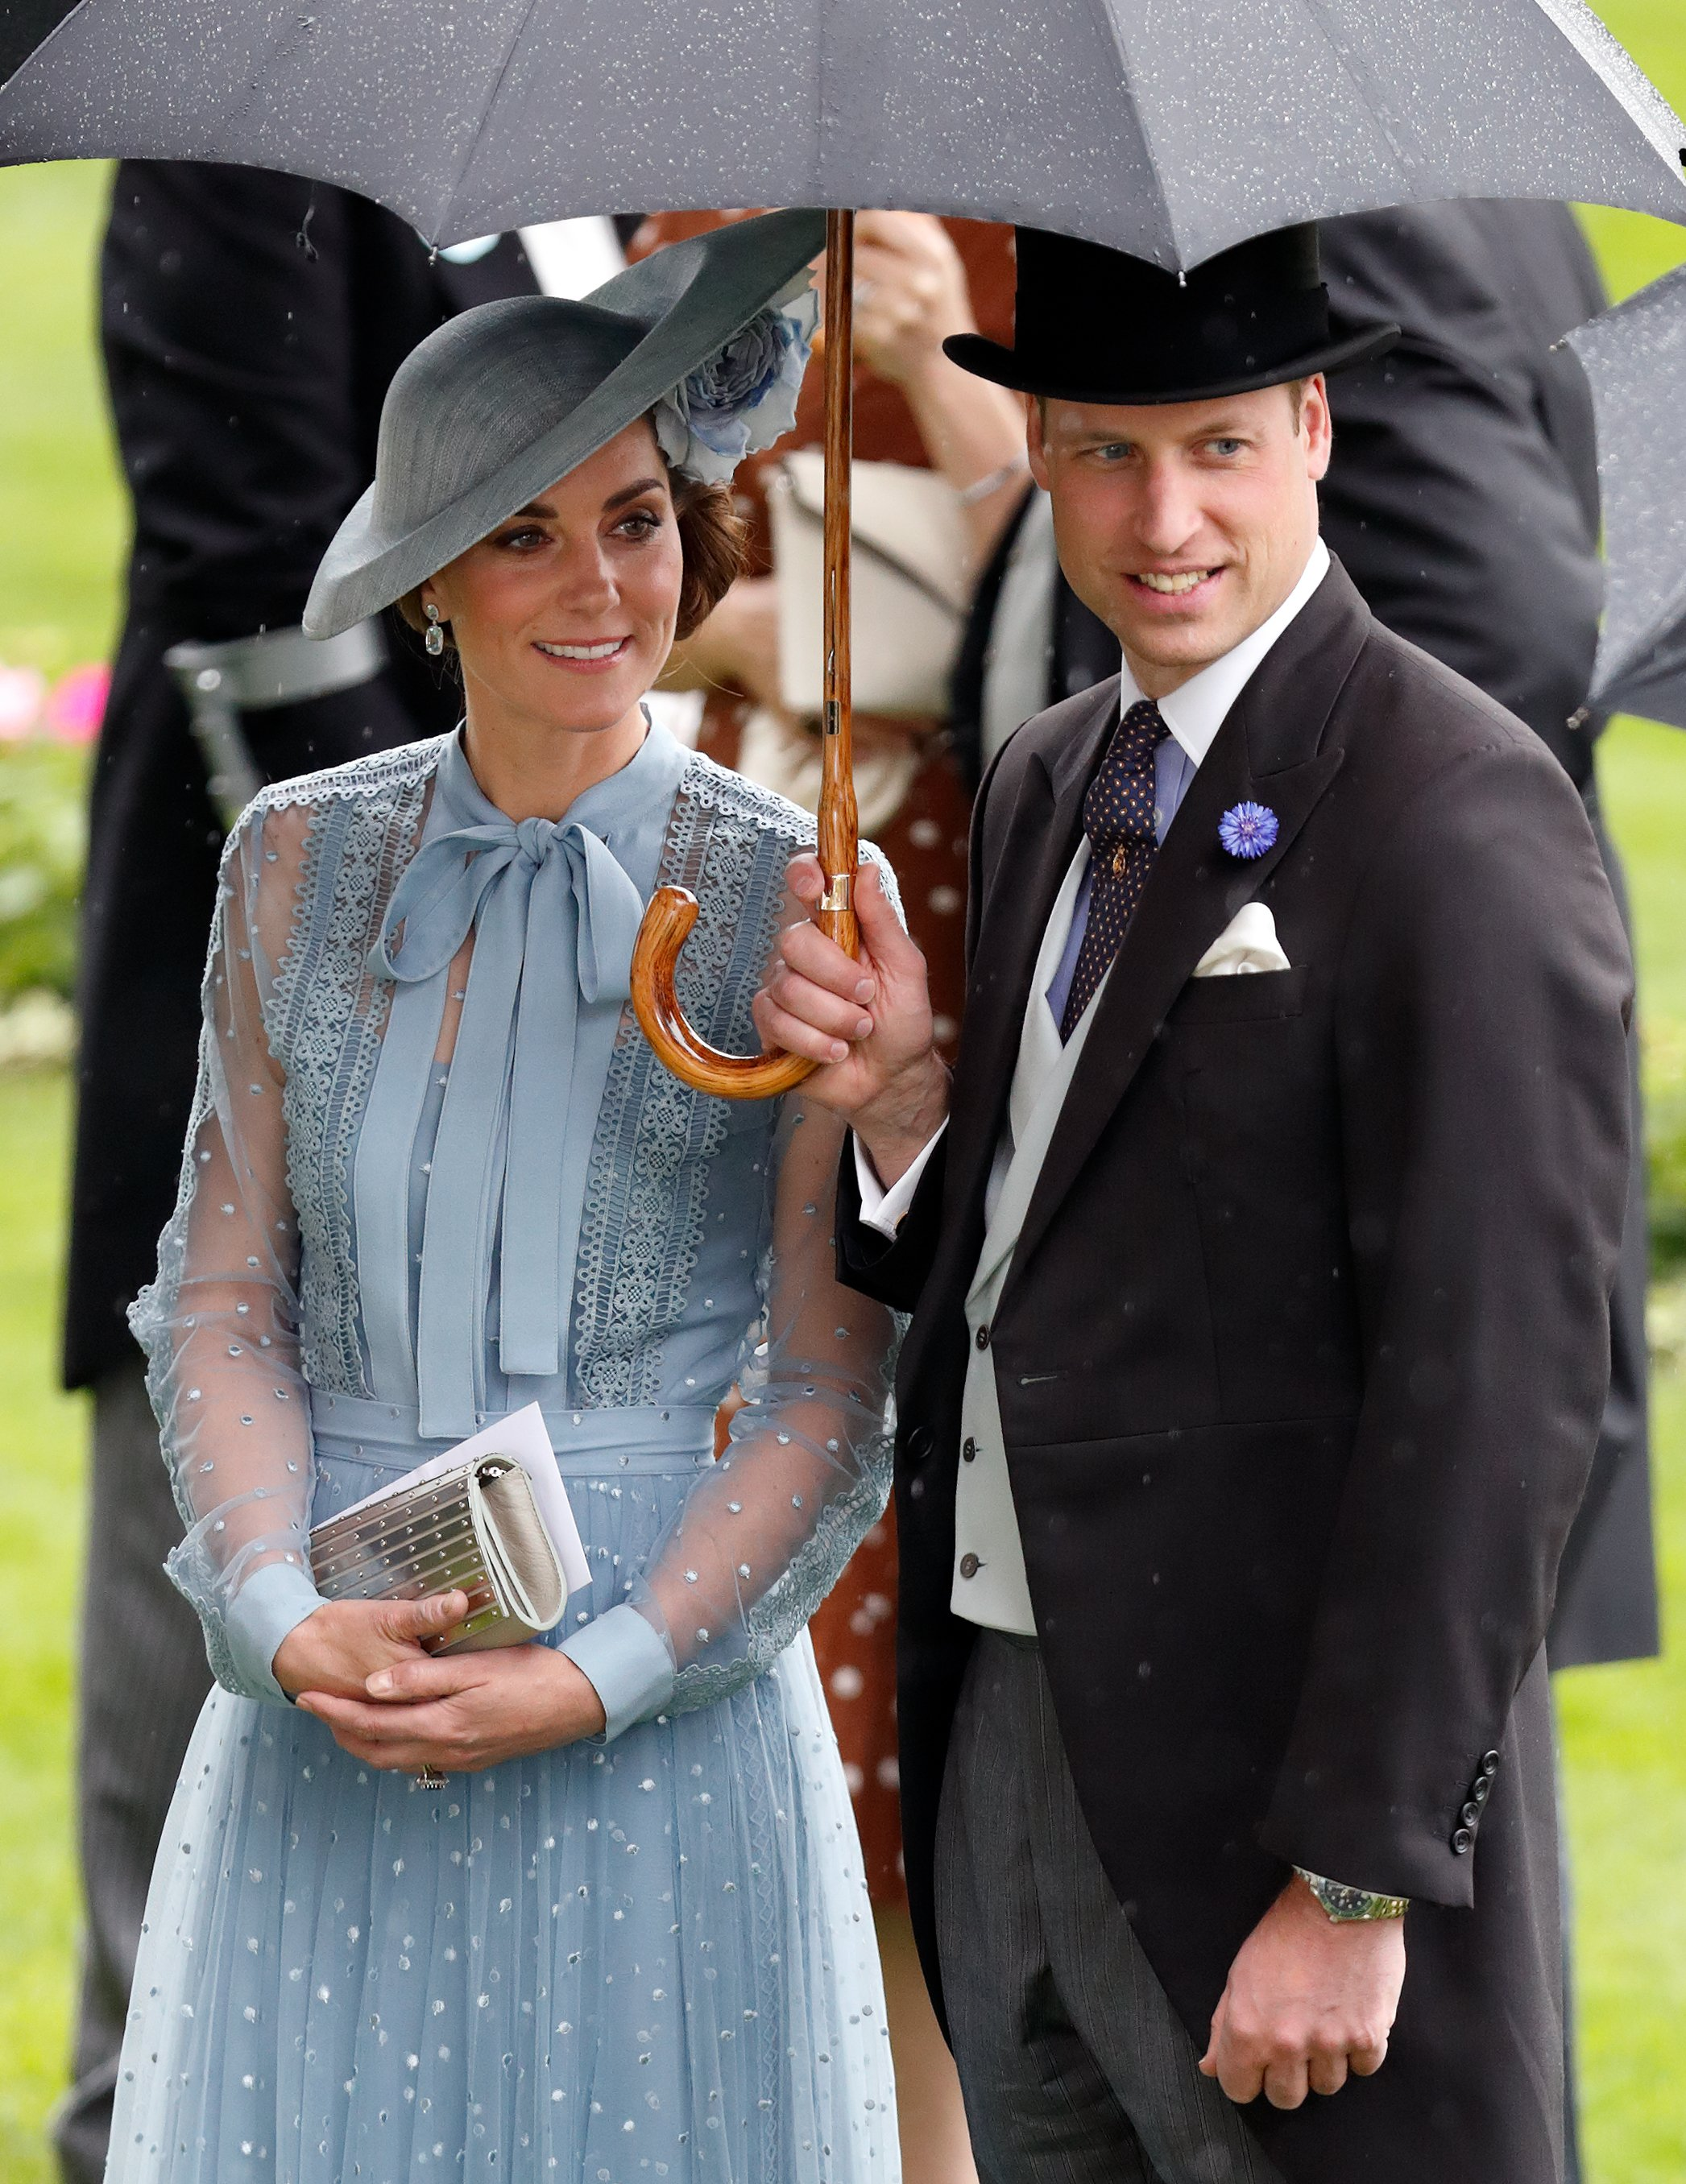 Prince William and Duchess Kate at the Royal Ascot | Photo: Getty Images